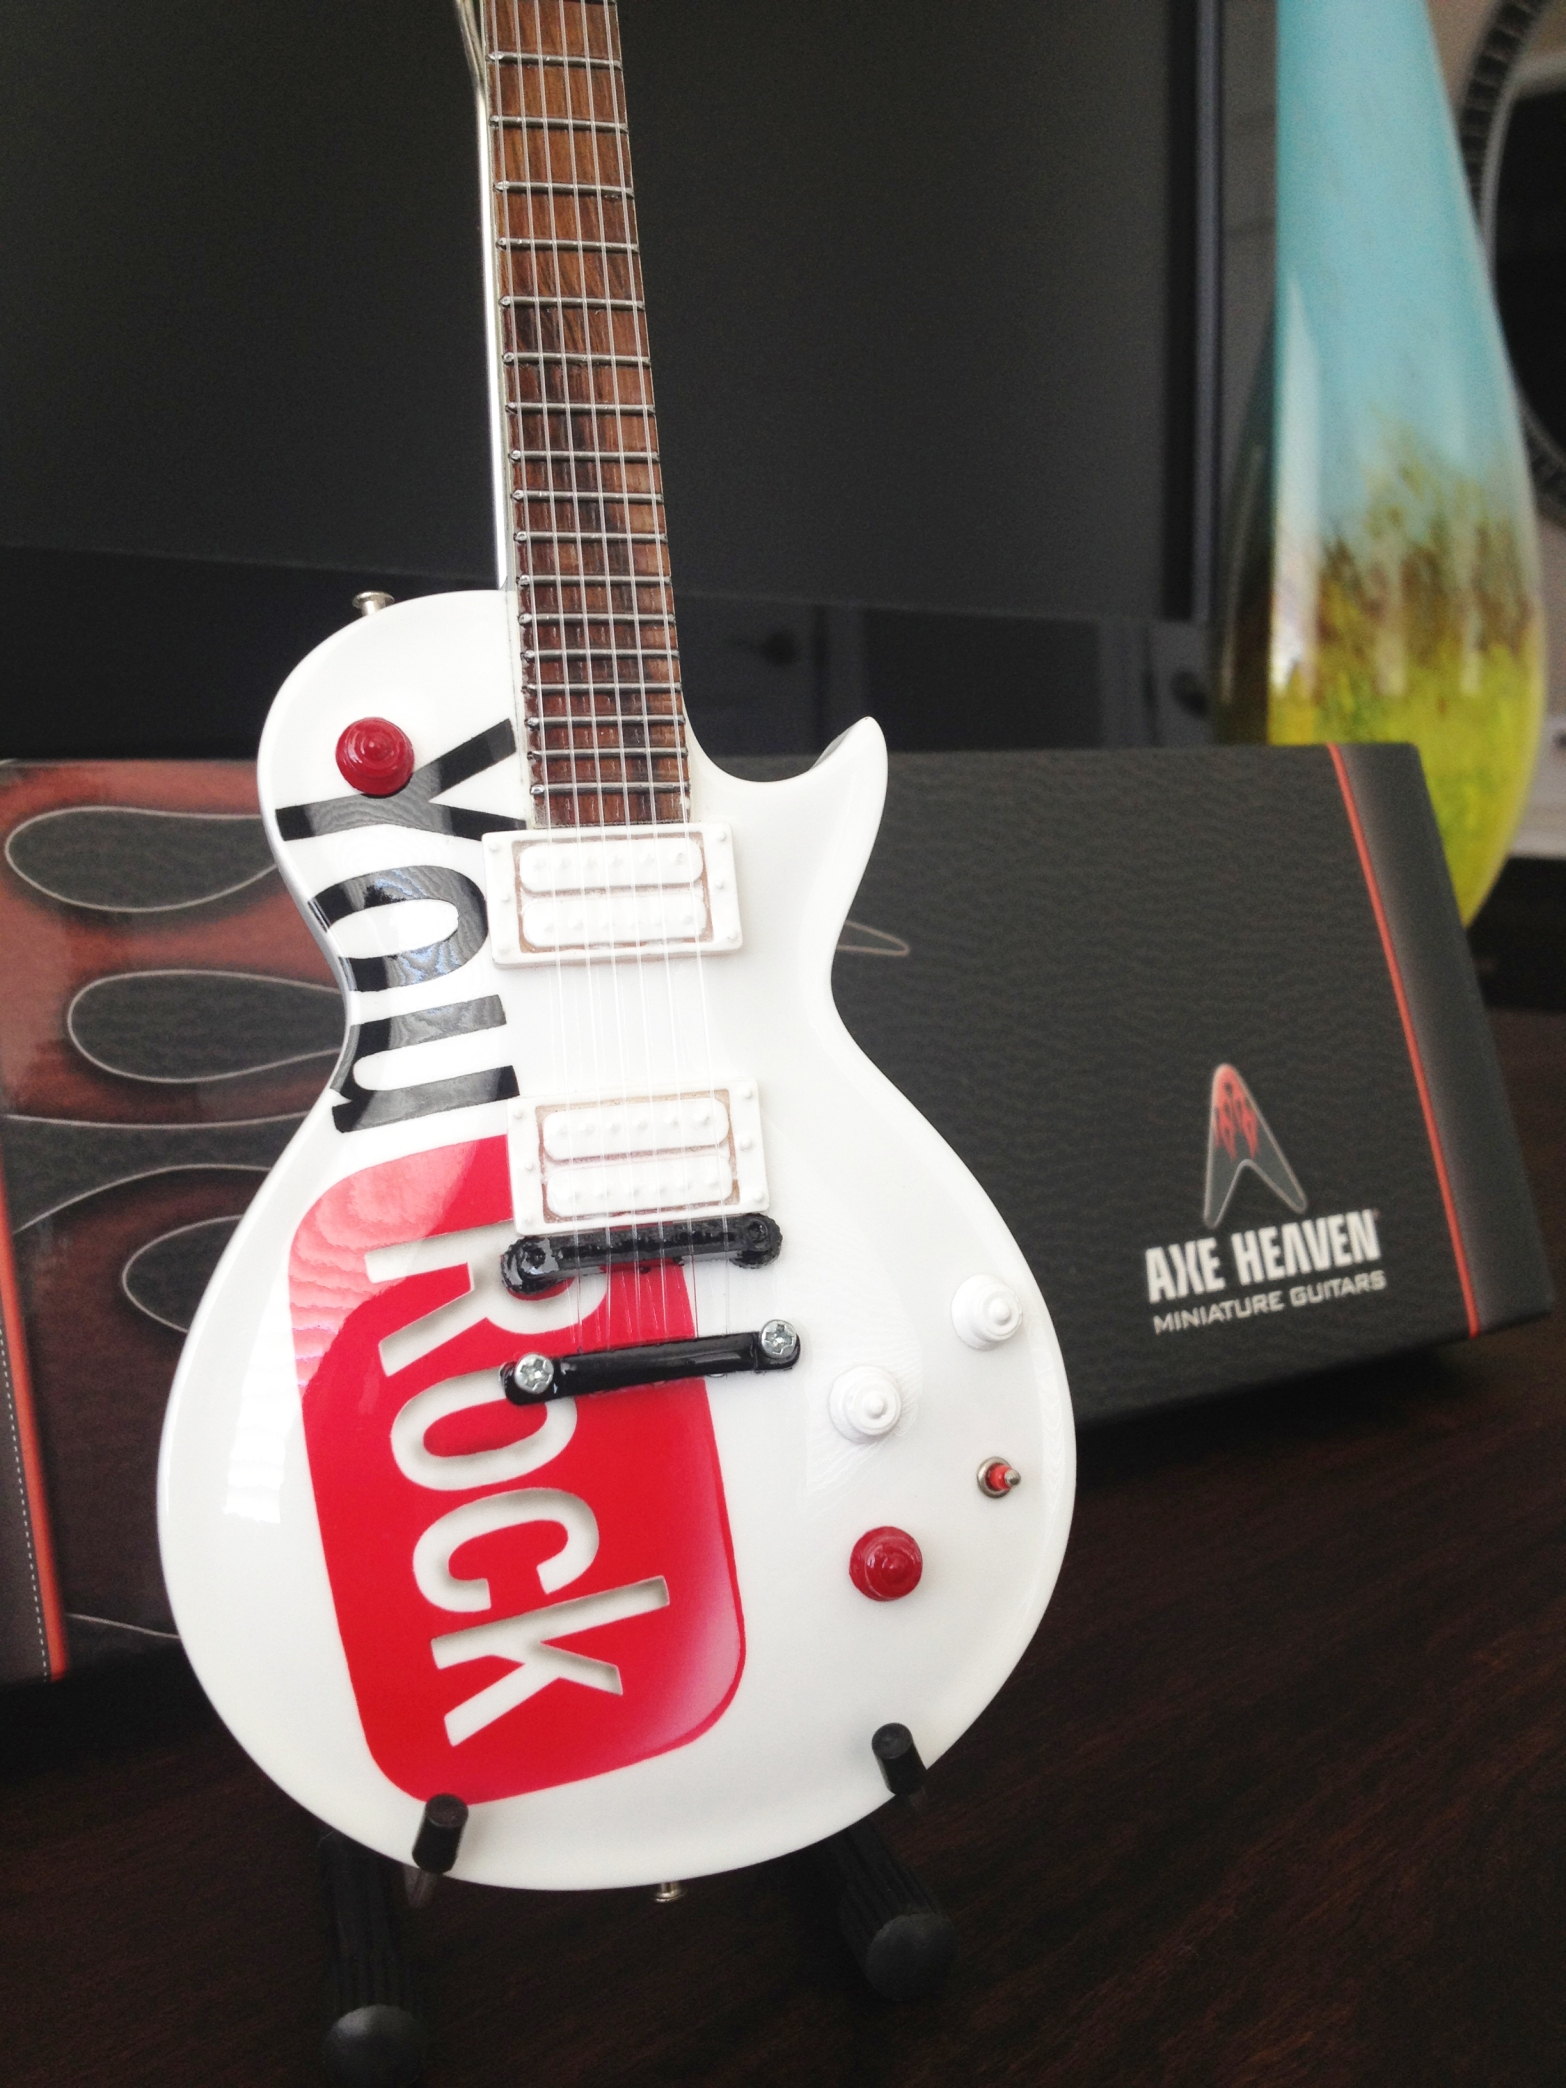 Google YouRock Employee Award Mini Guitar with Miniature Guitar Stand